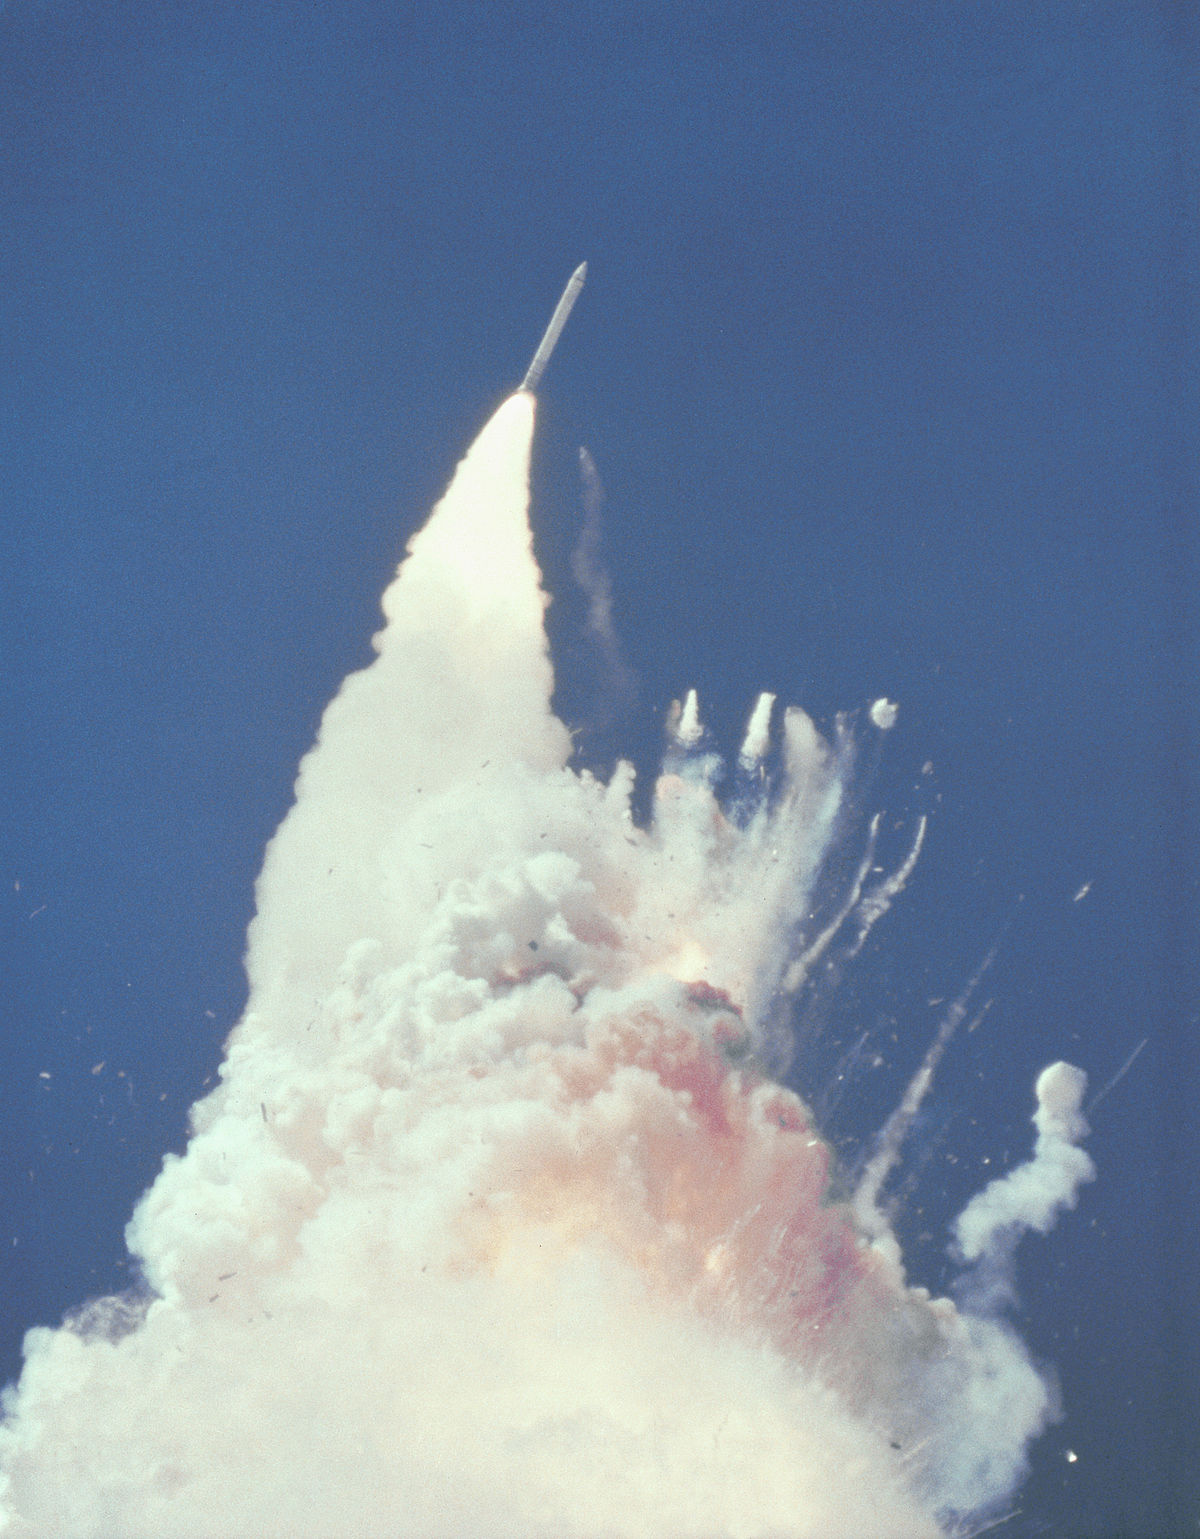 space shuttle challenger explosion - photo #17